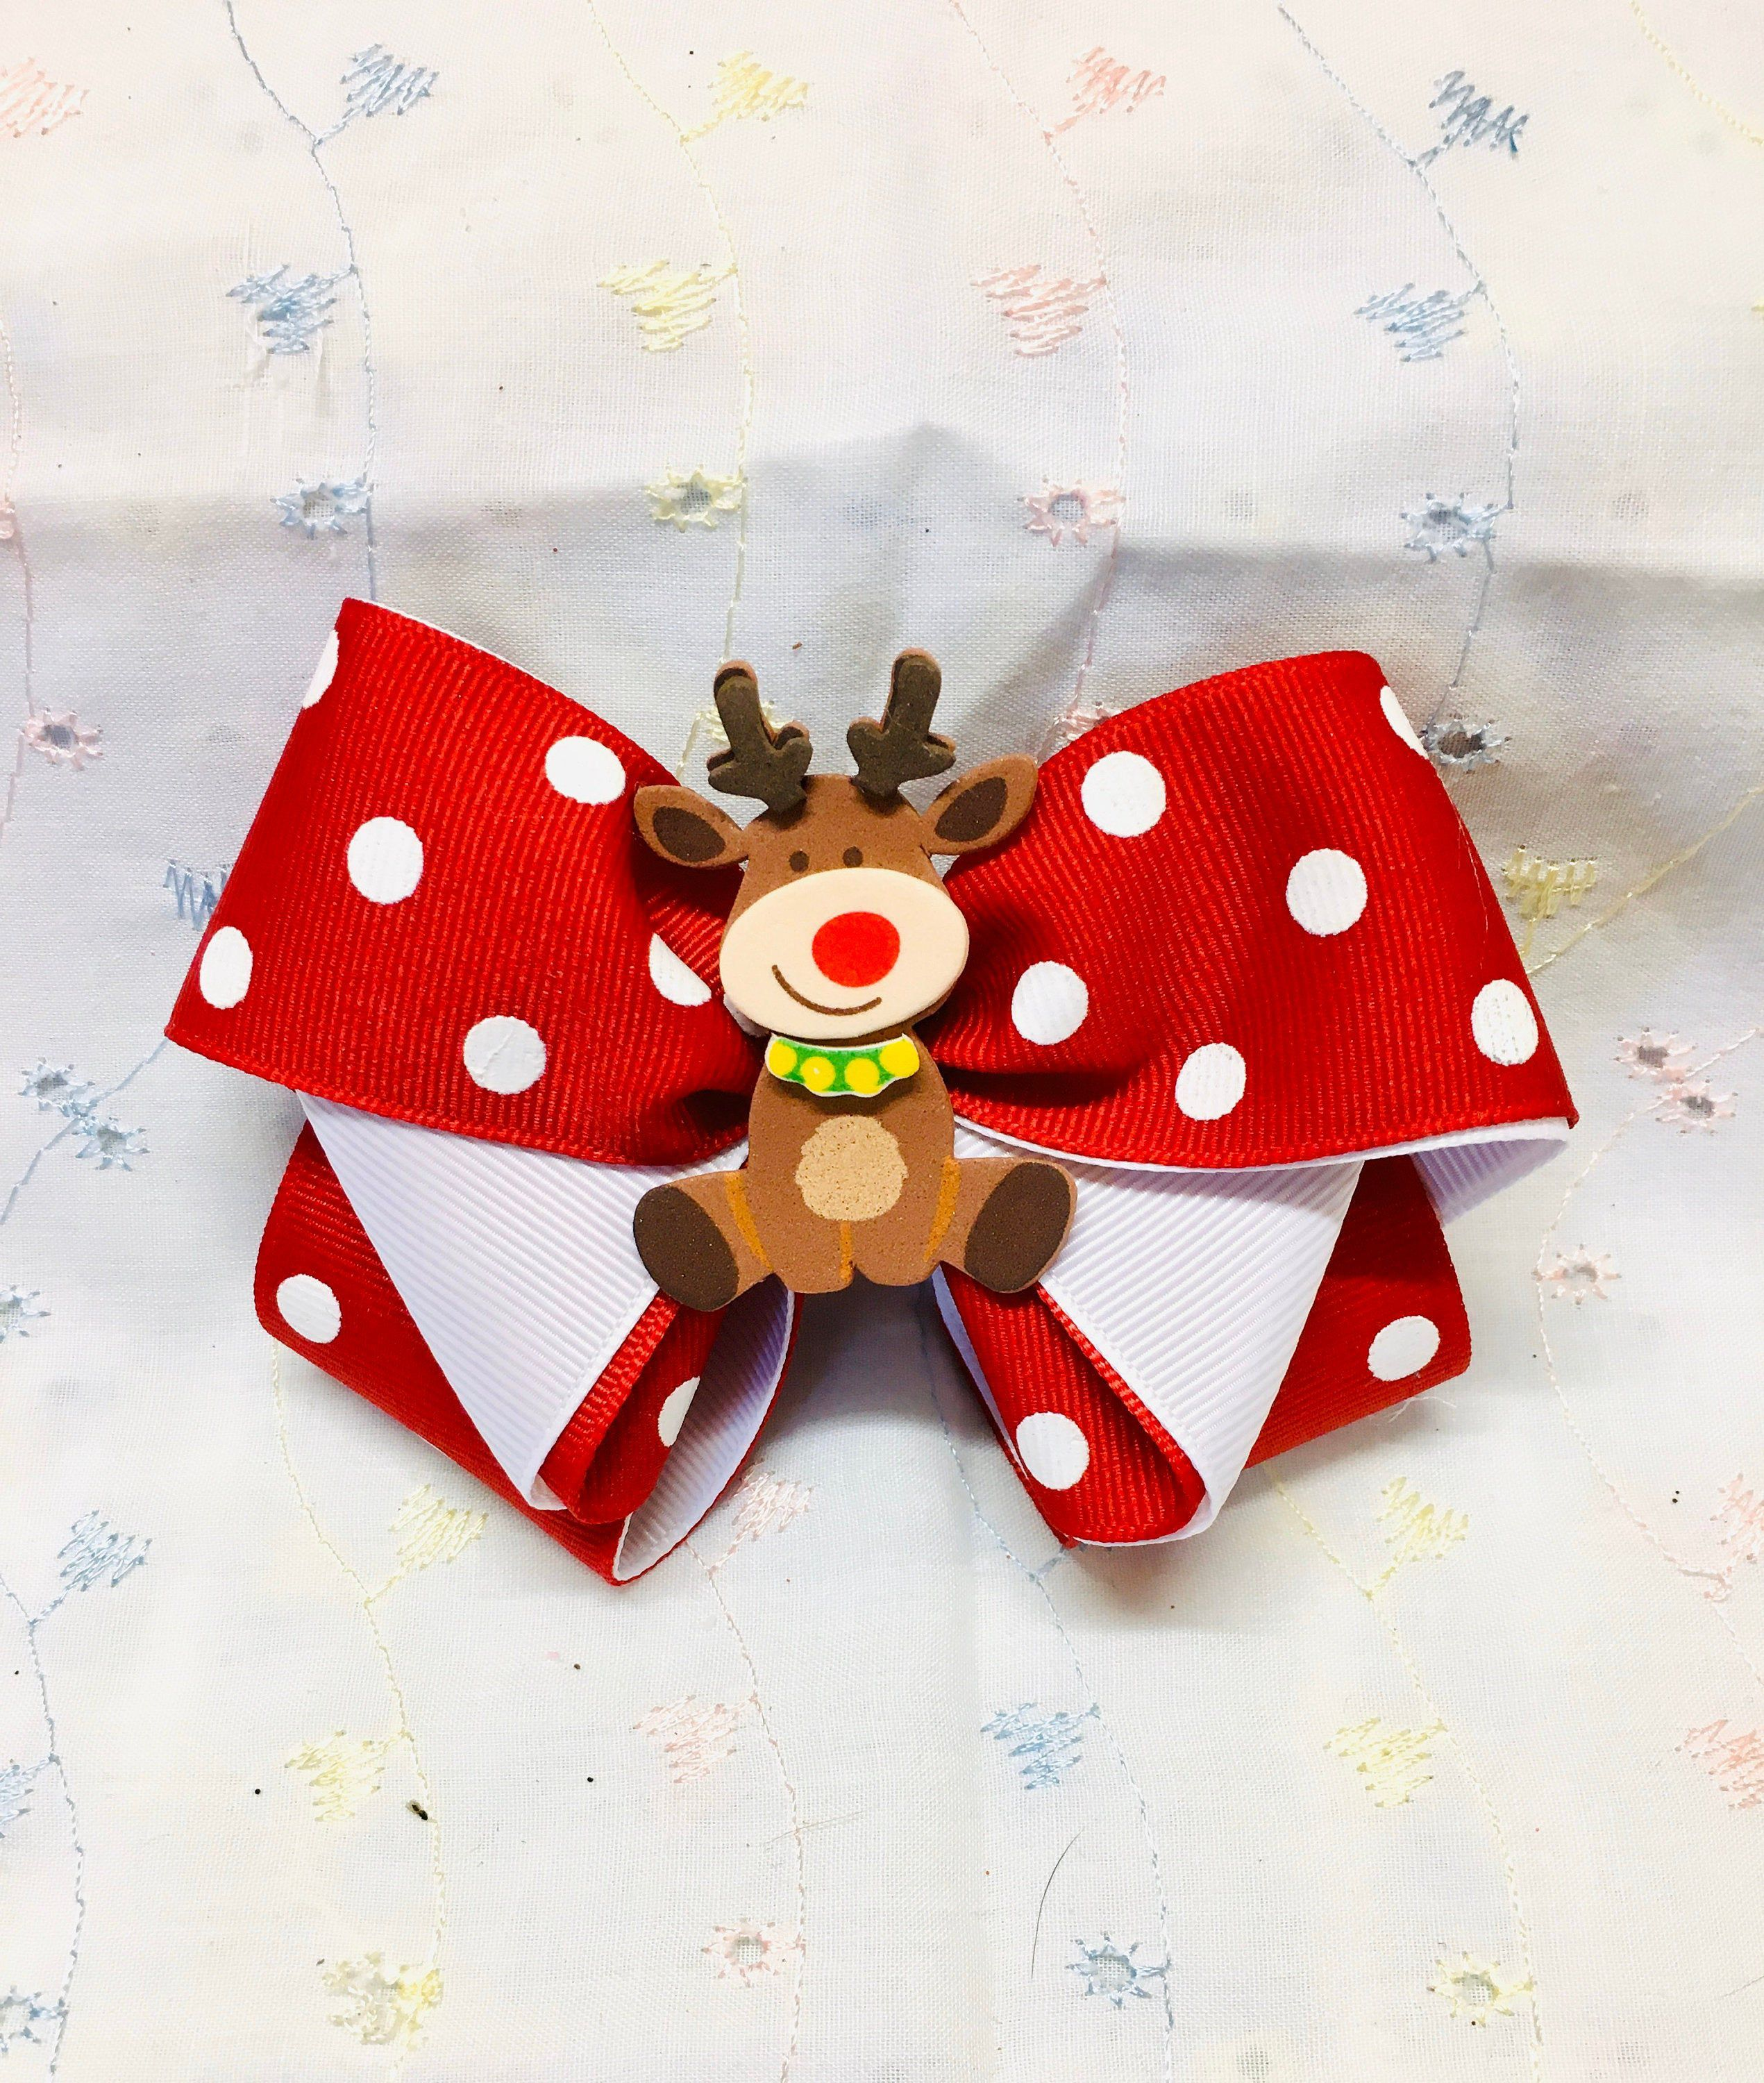 Christmas - Funky Reindeer red bow with white polka dots. #funkyreindeer Excited to share this item from my #etsy shop: Christmas - Funky Reindeer red bow with white polka dots. #funkyreindeer